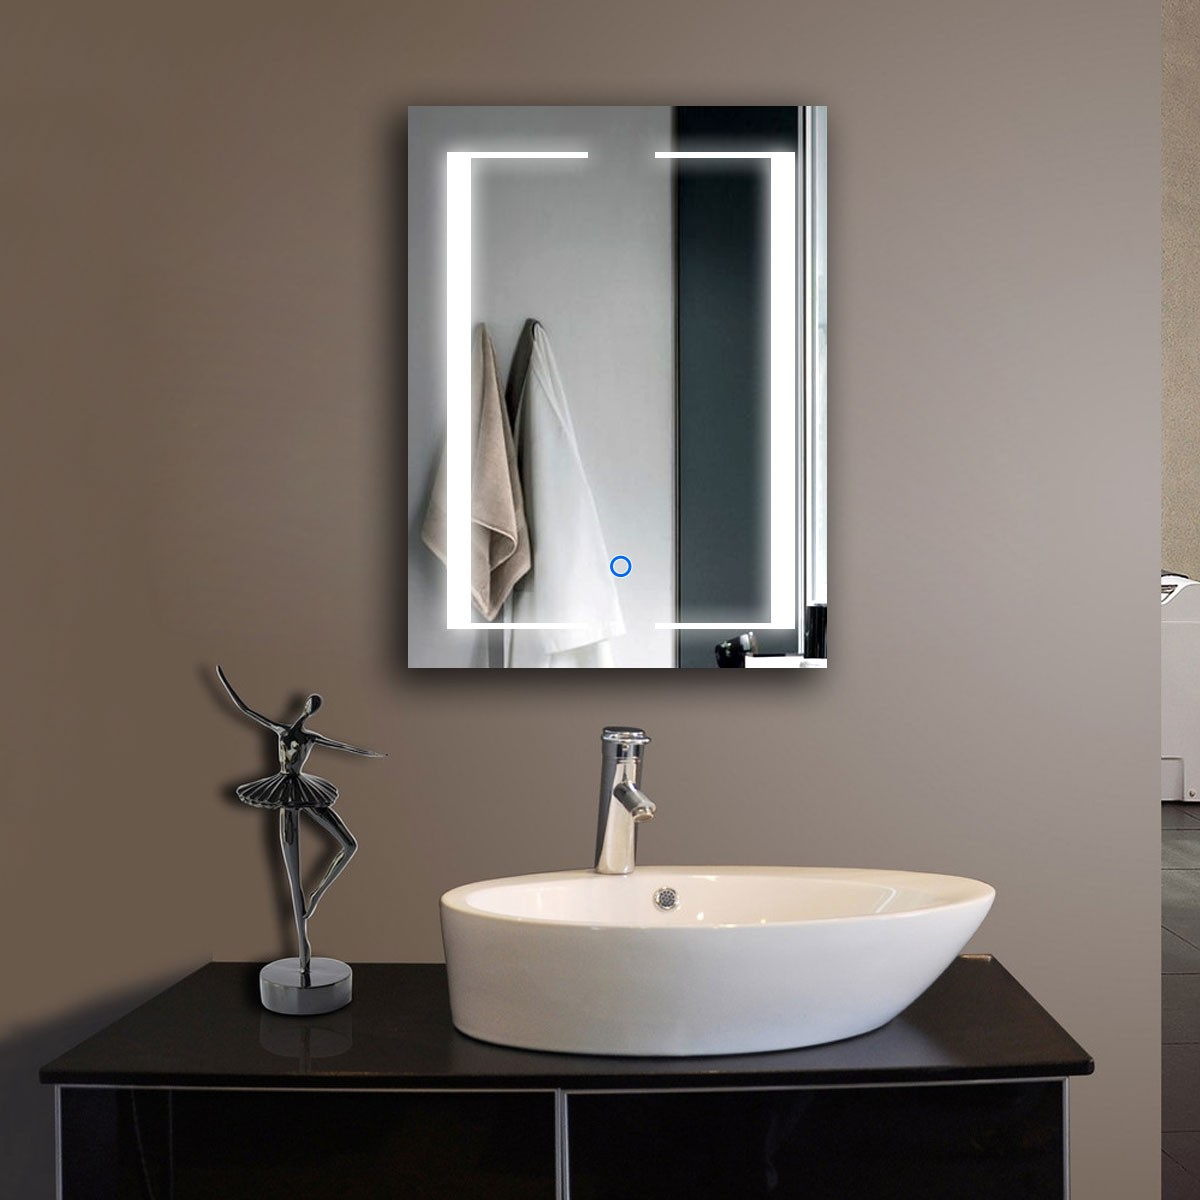 24 x 32 In Vertical LED Bathroom Mirror, Touch Button (DK-OD-CL011)